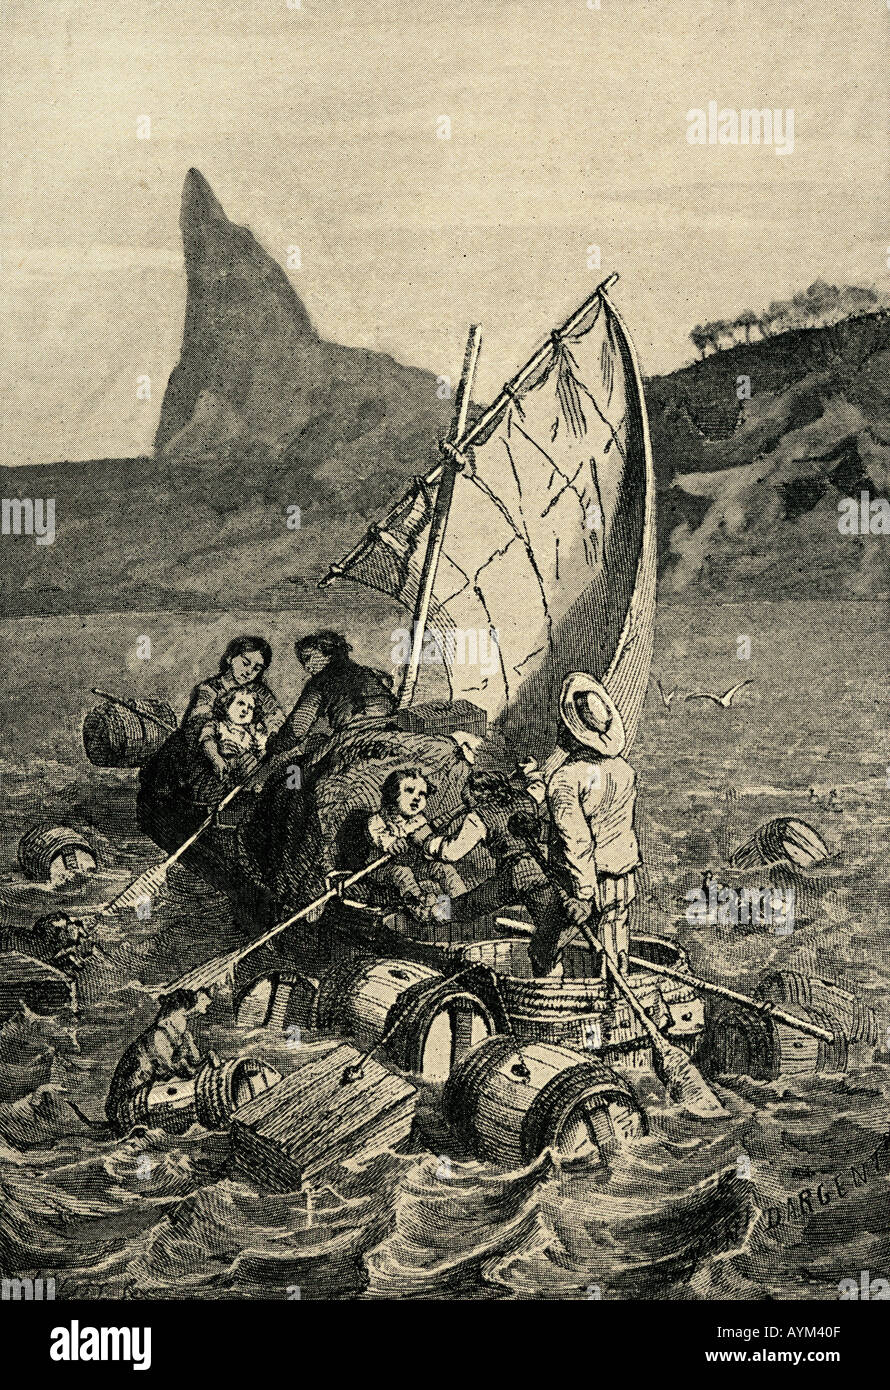 The Swiss Family Robinson rowing ashore after the shipwreck. - Stock Image